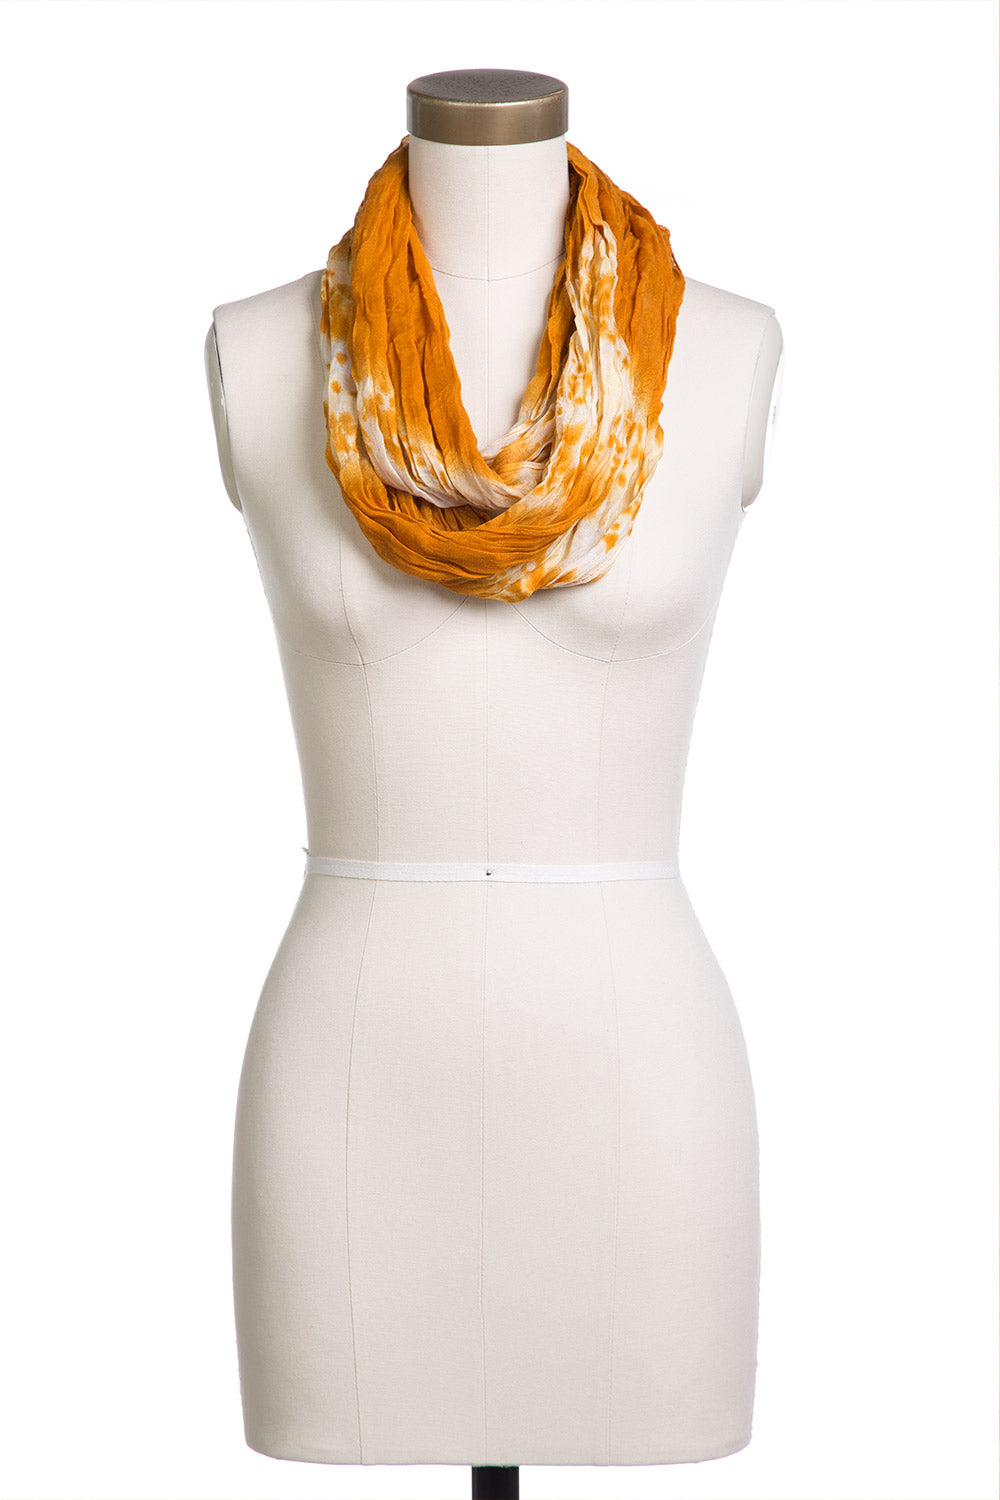 Type 3 Golden Fire Scarf